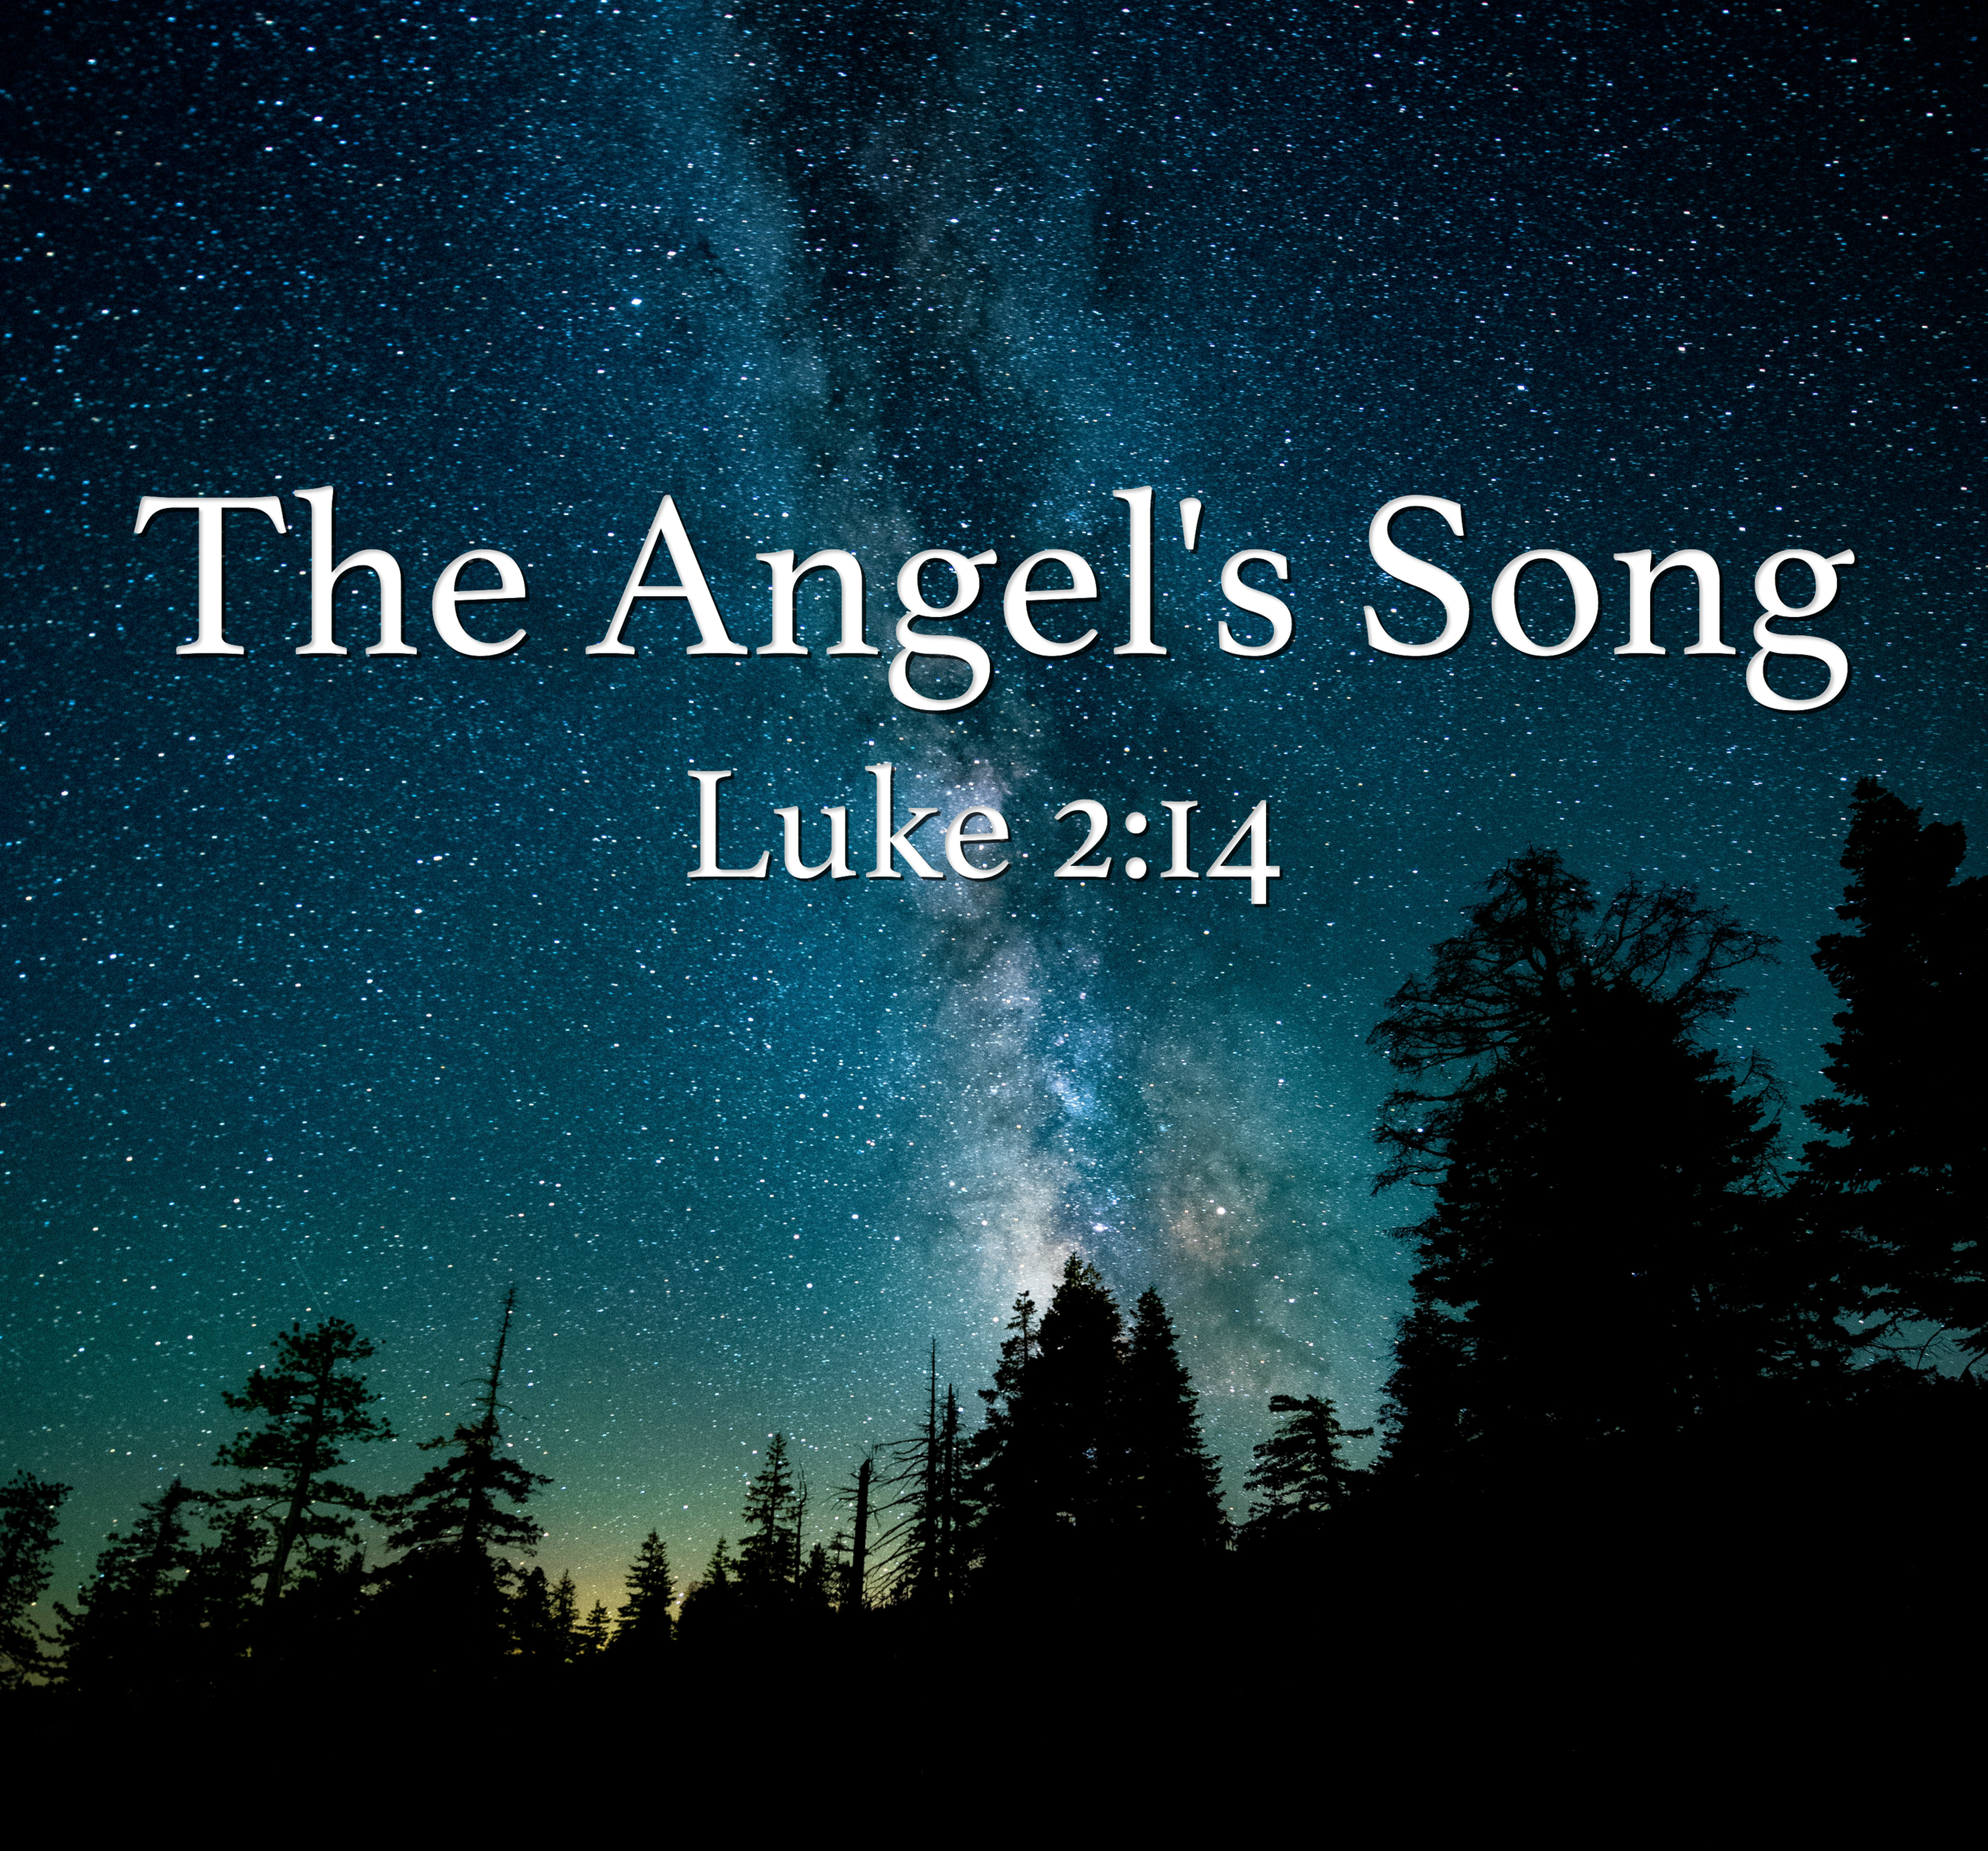 The Angel's Song.png